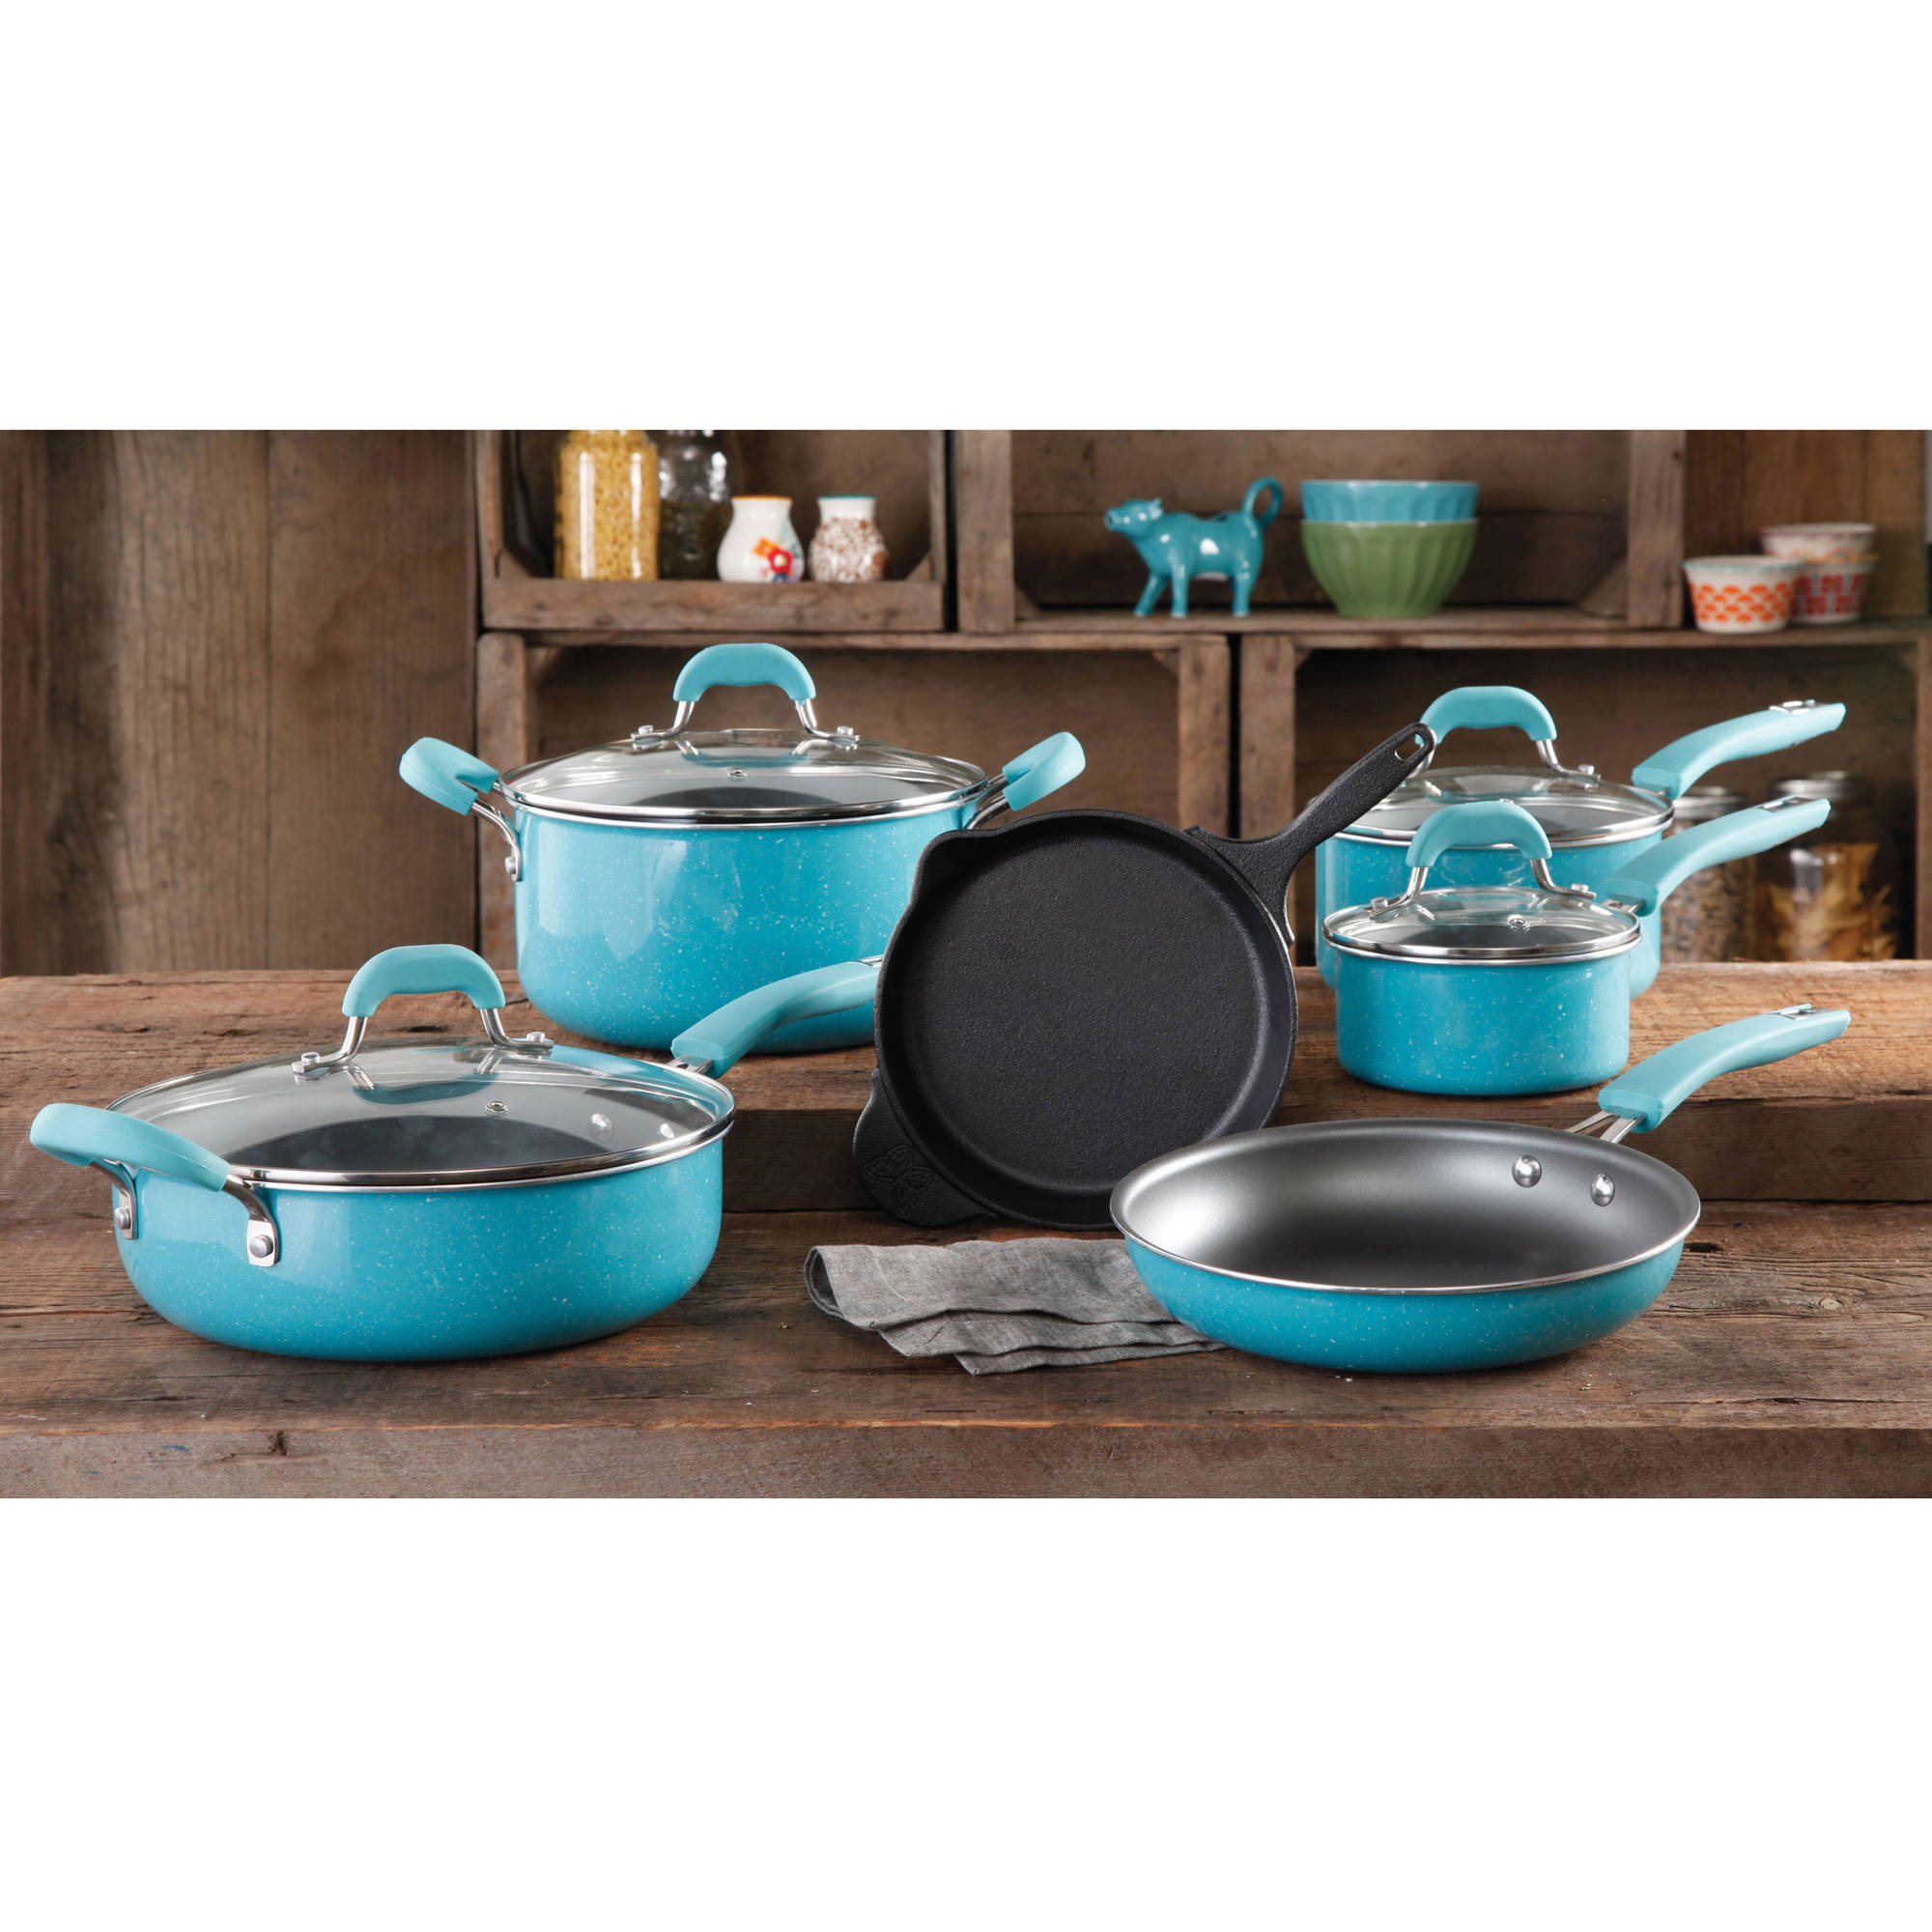 The Pioneer Woman Vintage Speckle 10 Piece Non-Stick Pre-Seasoned Cookware Set